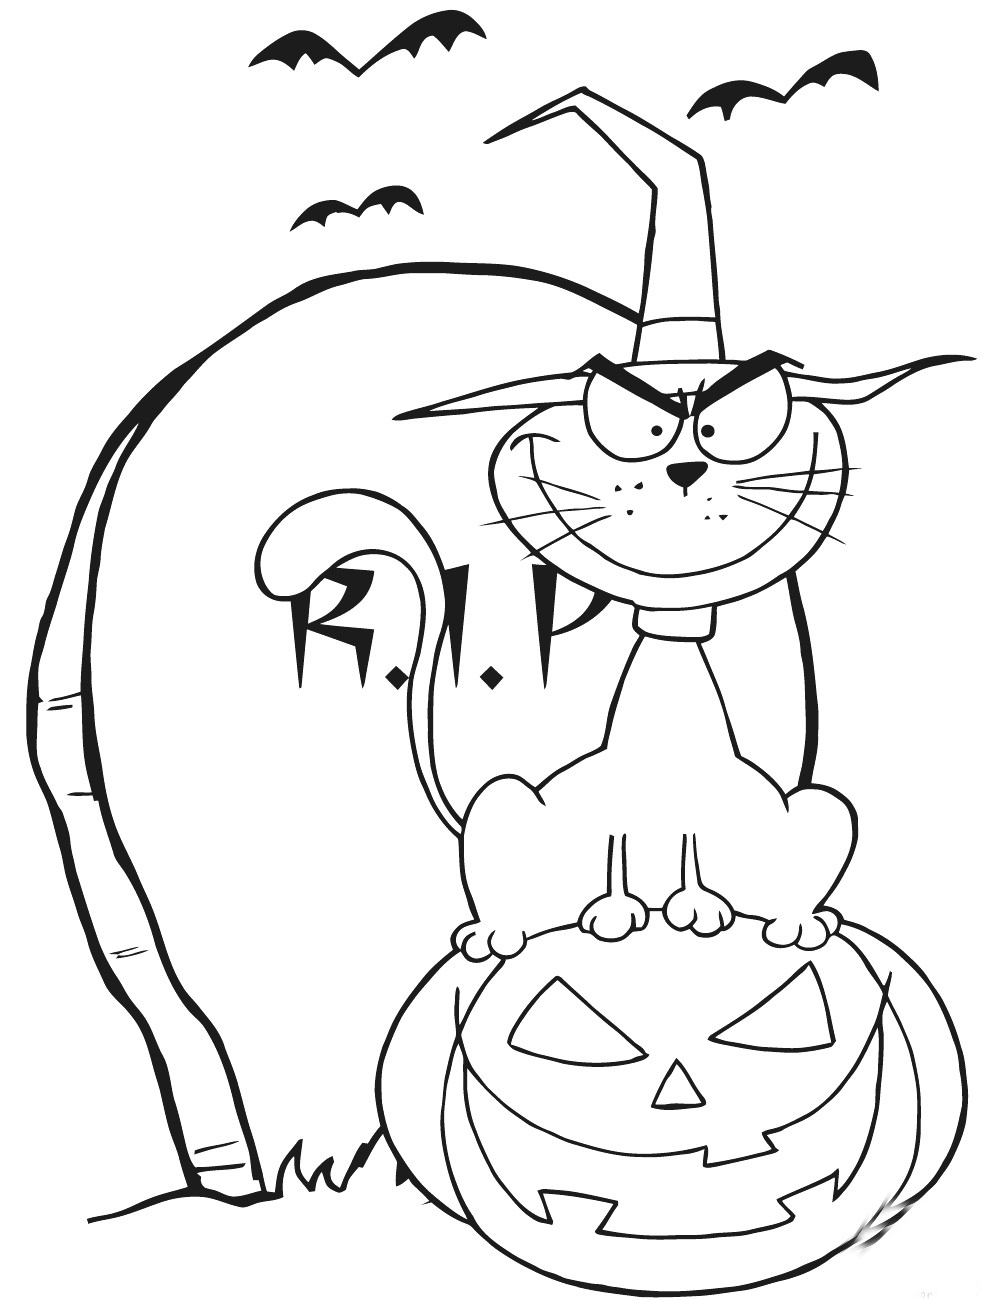 coloring sheets for halloween top 10 halloween coloring pages for kids to consider this coloring for halloween sheets